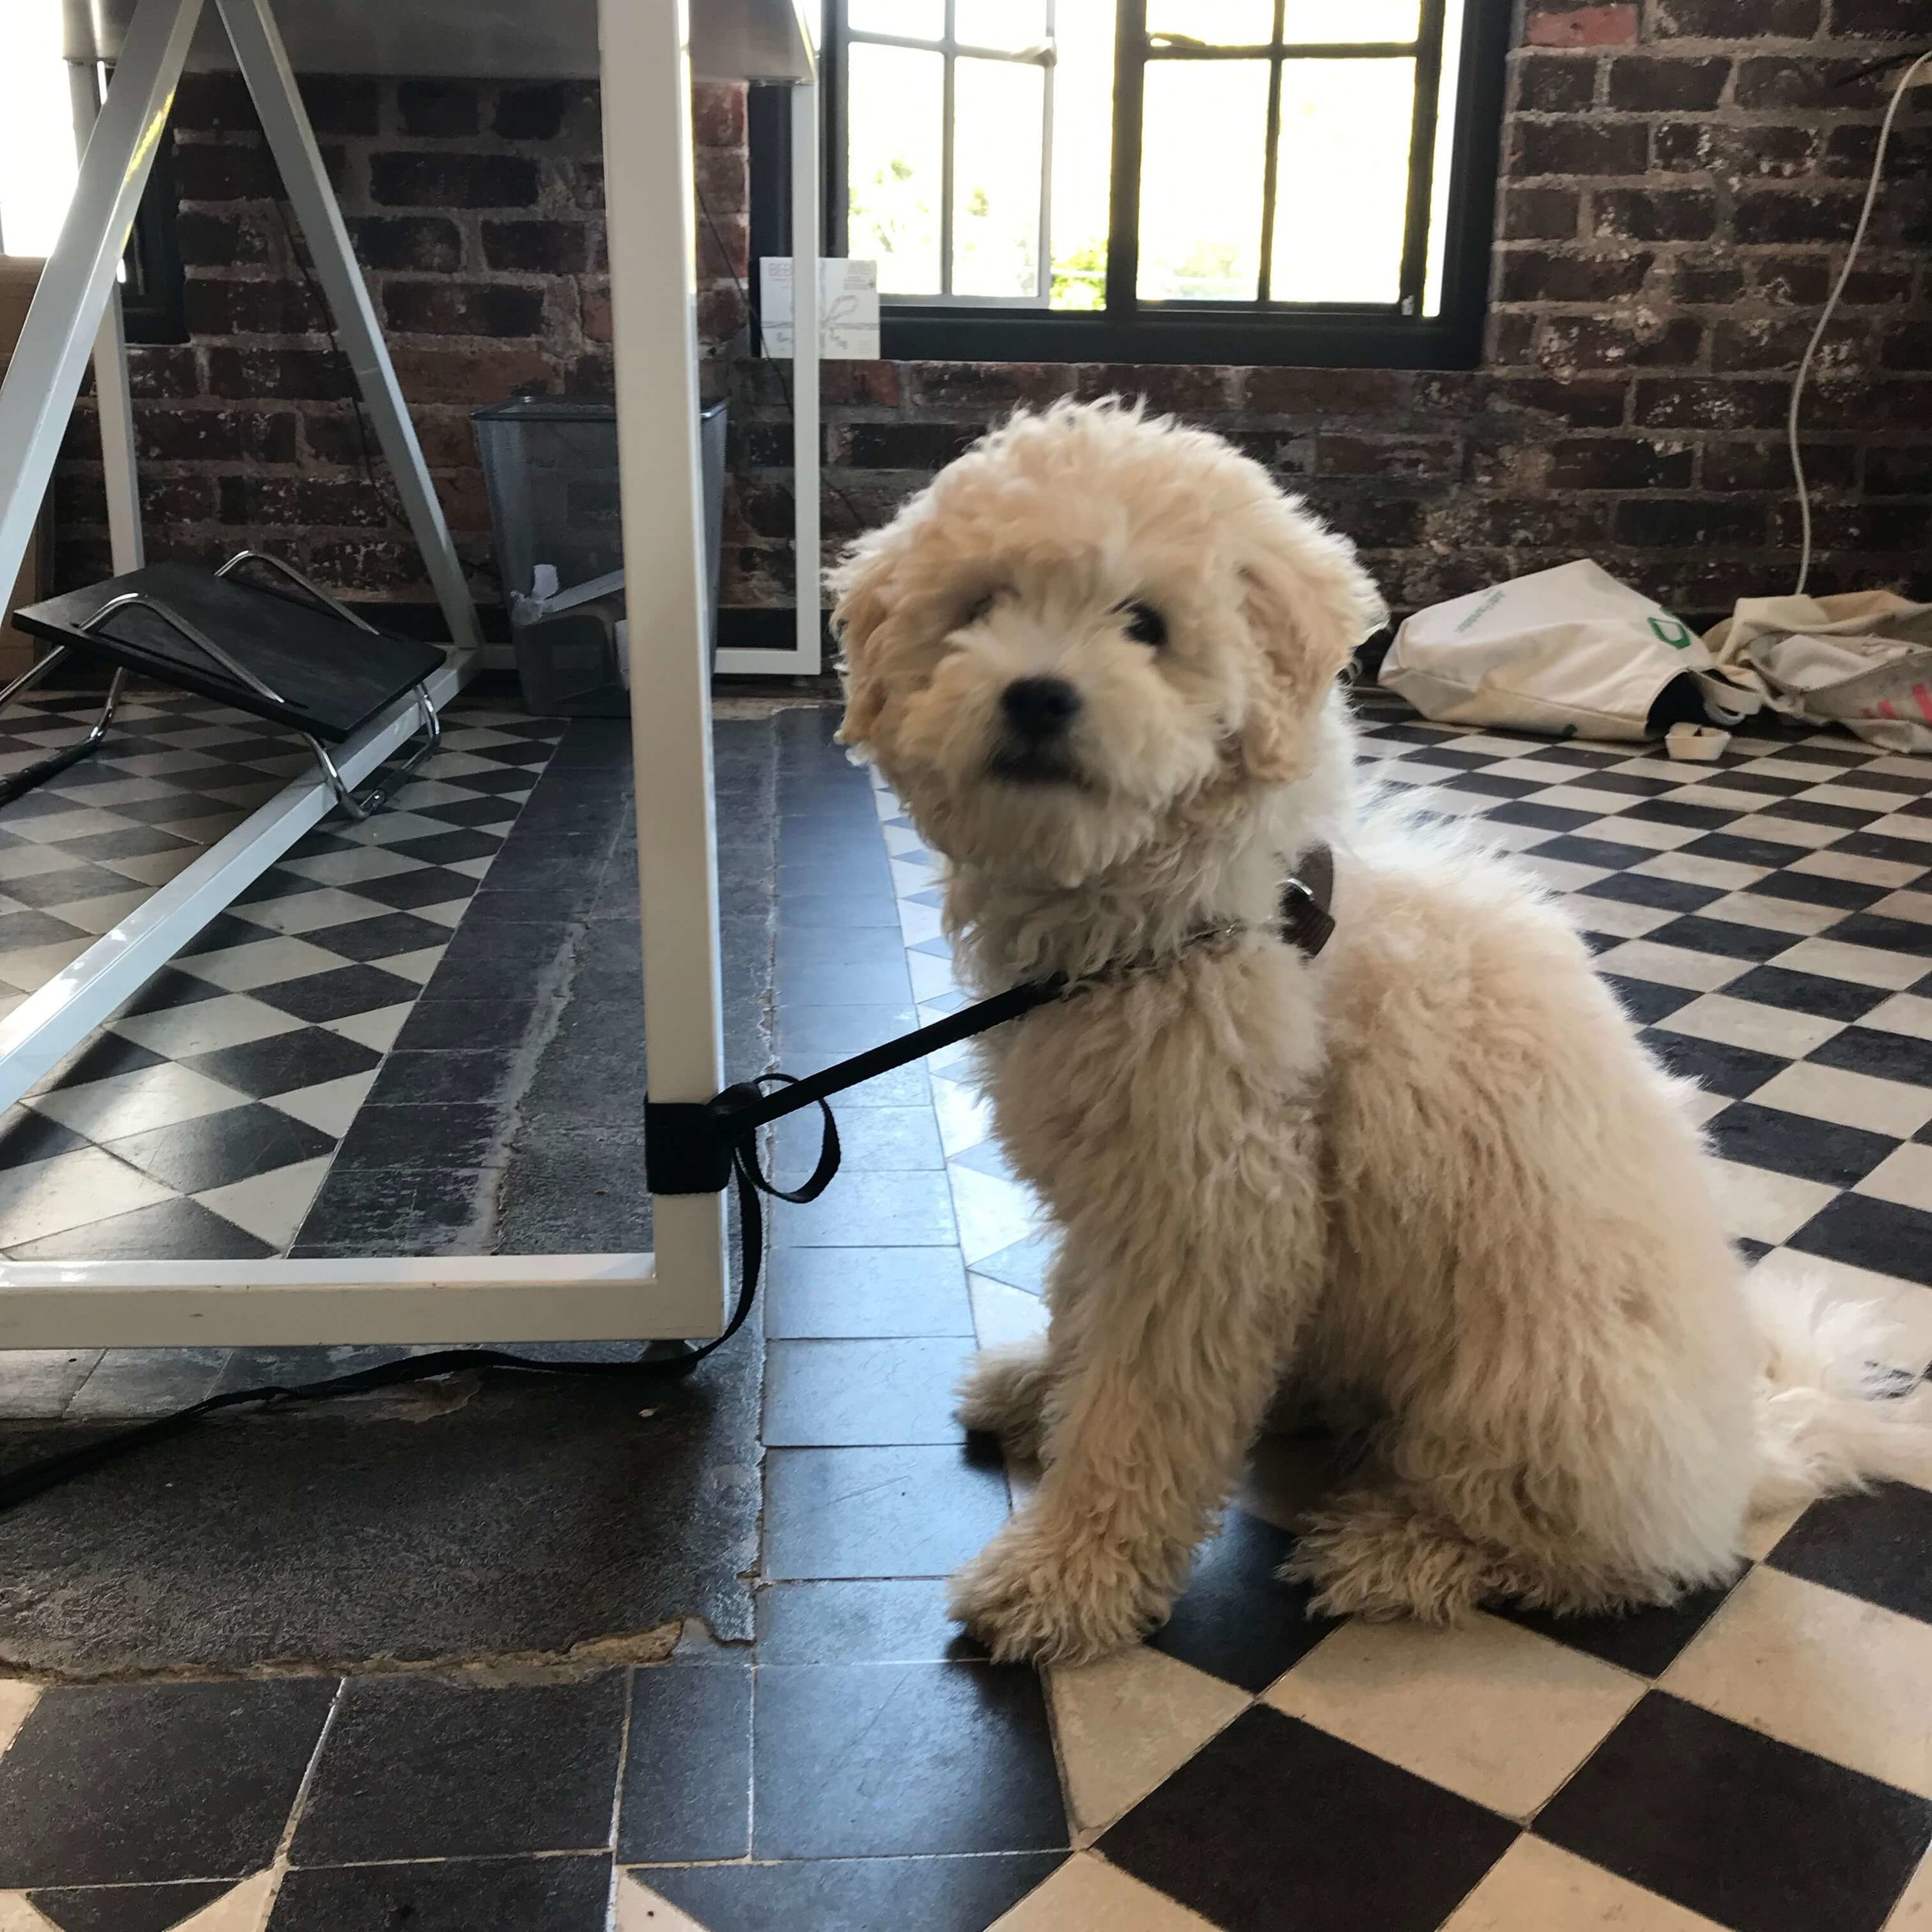 Puppy with dog separation anxiety learning to settle down with dog trainer, Alexandra Bassett, of Dog Savvy Los Angeles.